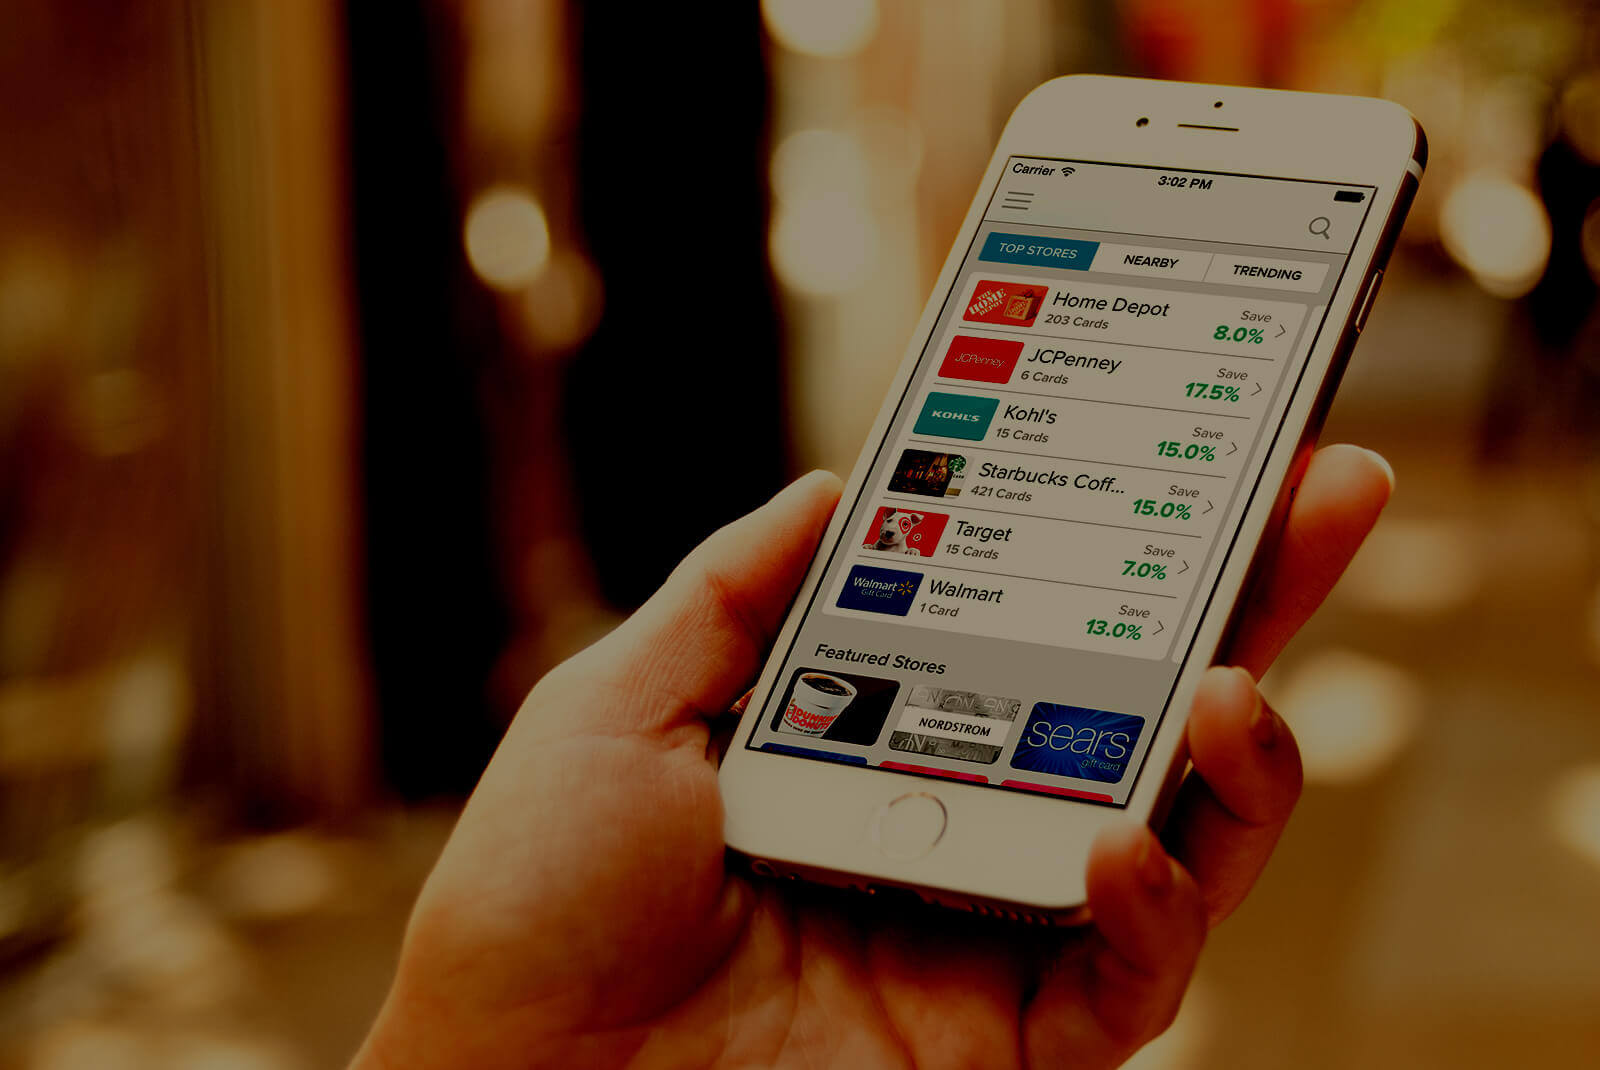 Enrich couponers shopping experience with a mobile app